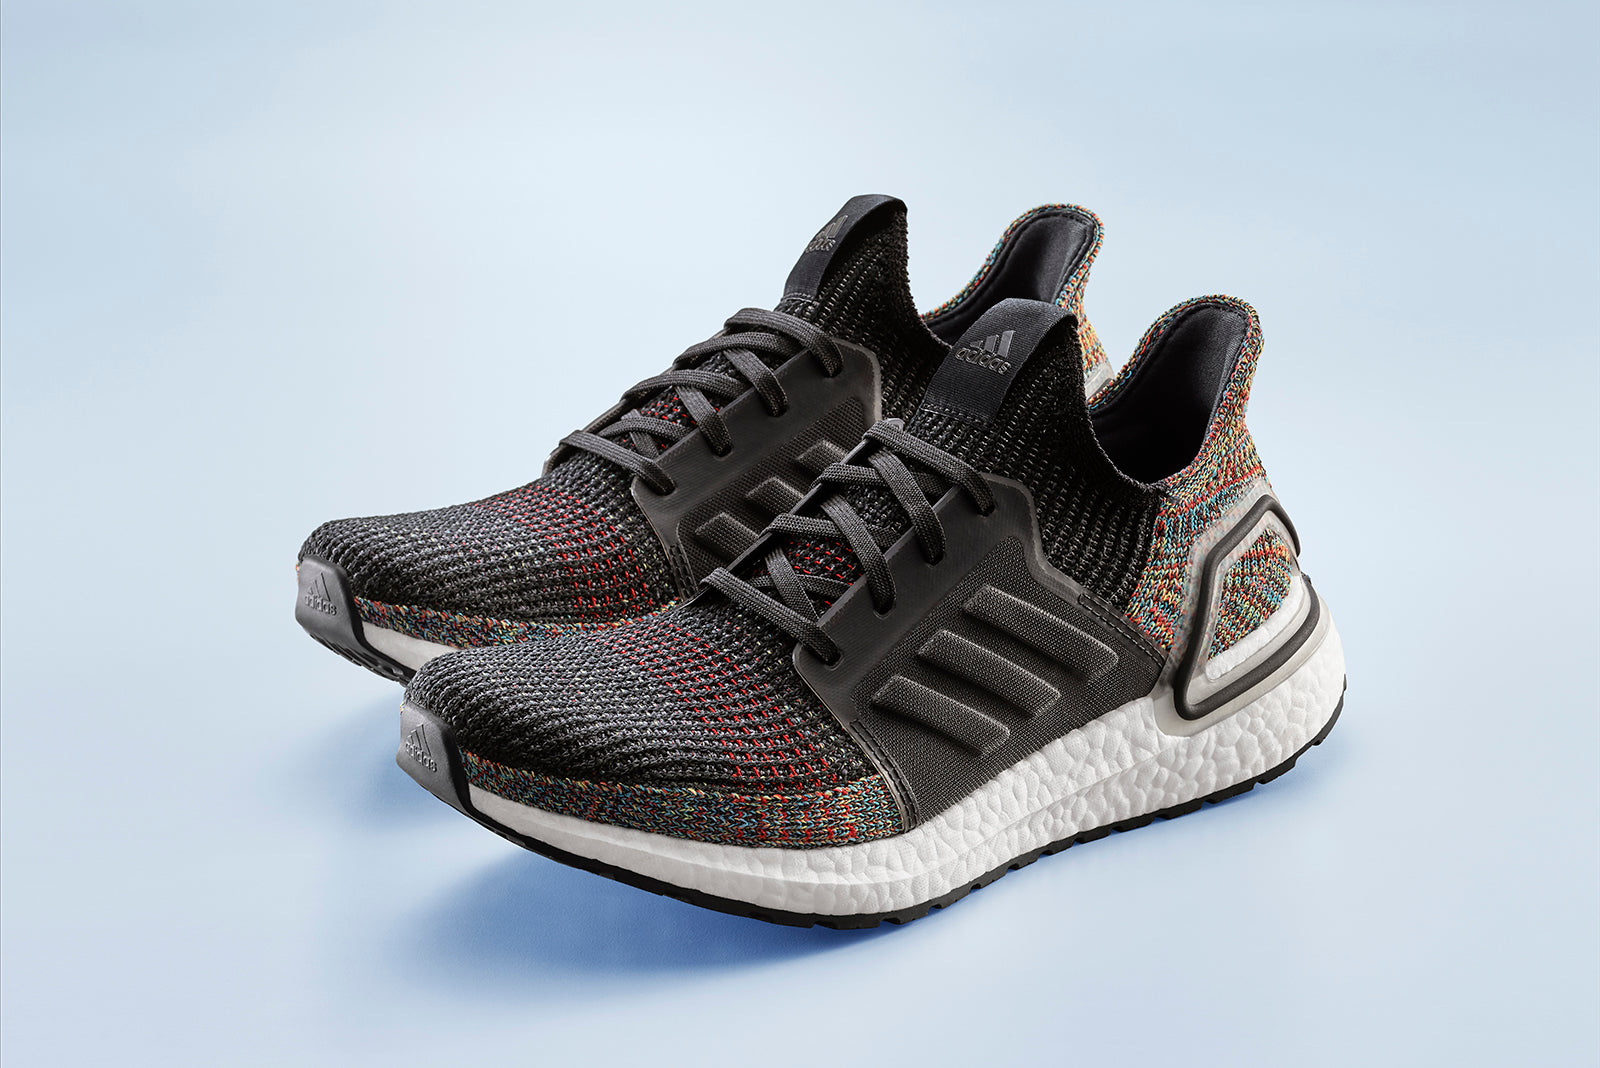 9a0259edc One of the first to emerge from the latest batch the adidas Ultraboost 19   Dark Pixel  boasts a multi colour knit detail set against a core black  base.